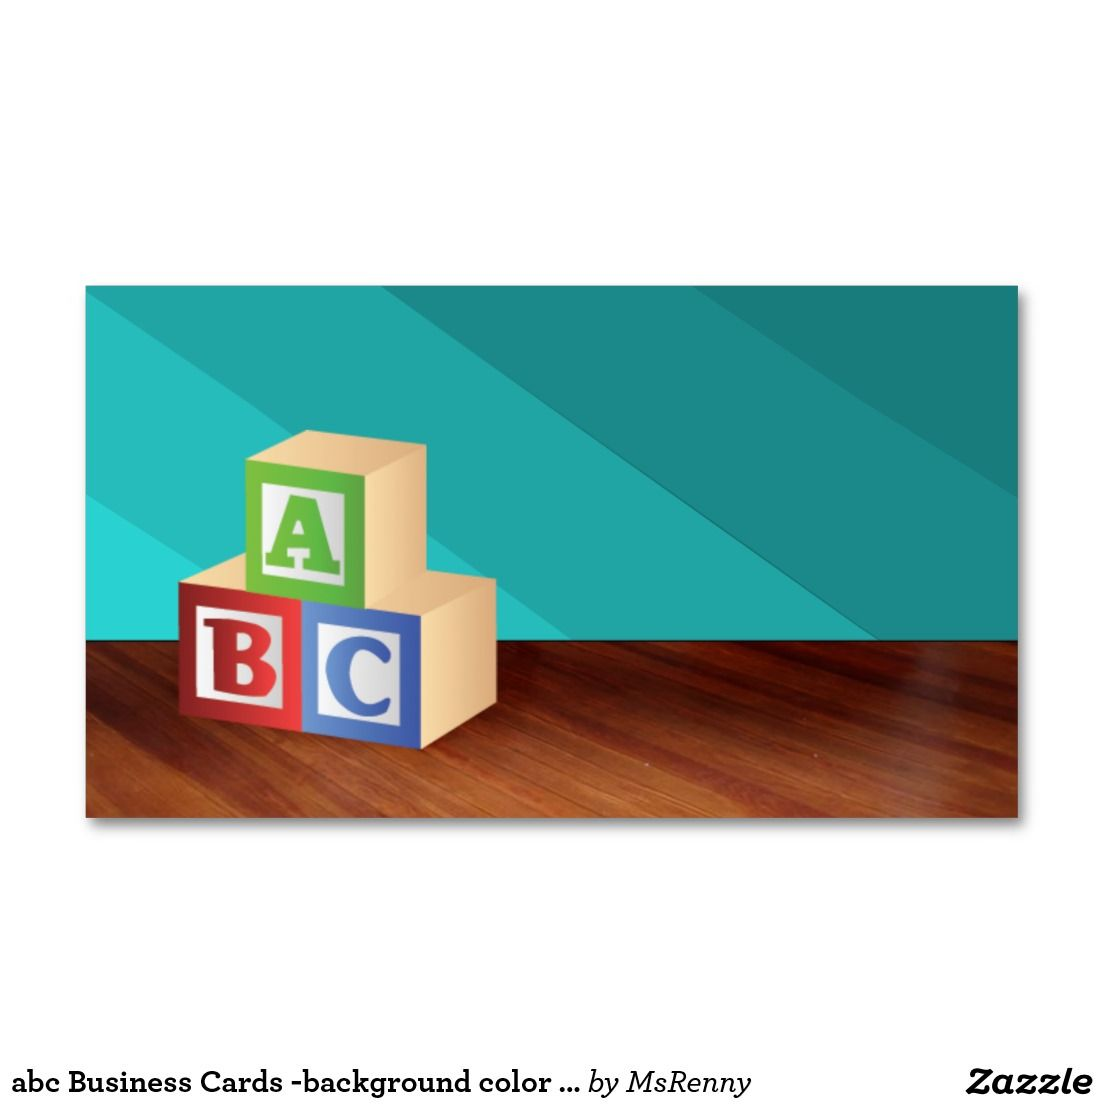 abc Business Cards -background color changeable | Daycare Supplies ...